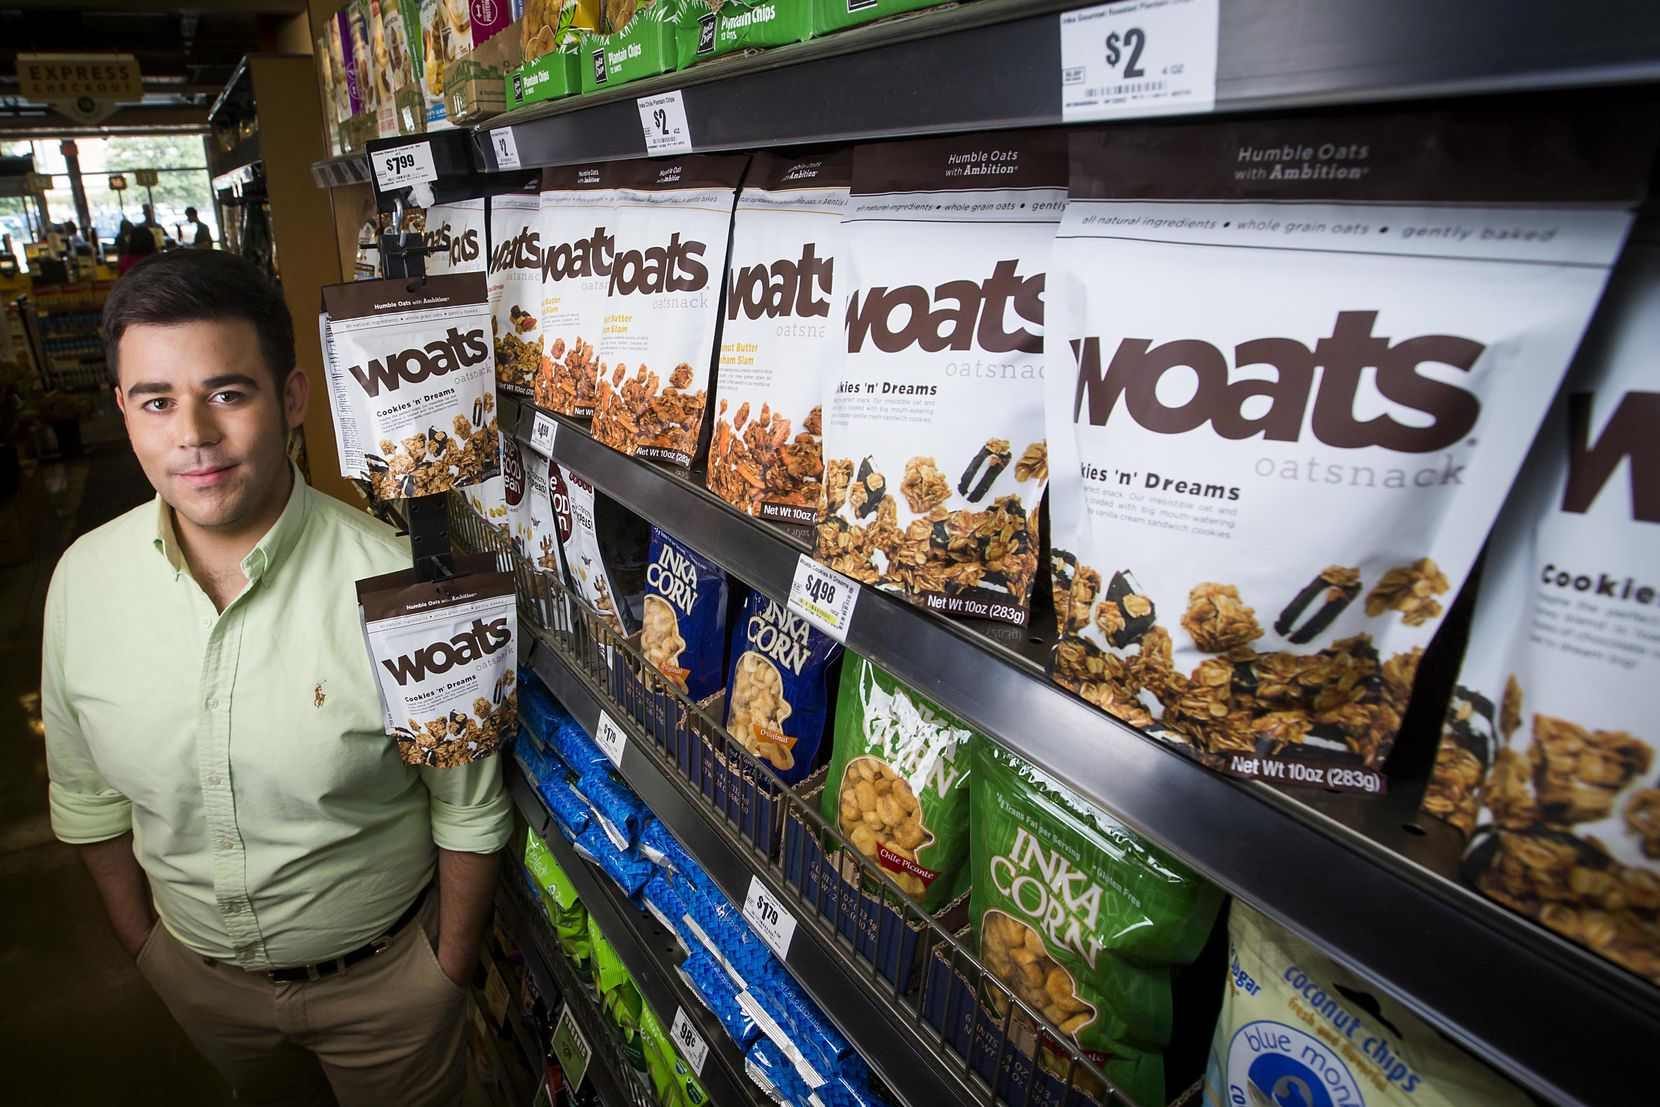 Justin Anderson, founder & president of Woats Oatsnack, decided to reinvent his brand into a snack that could be a healthy indulgence. He started his first granola brand when he was in high school.